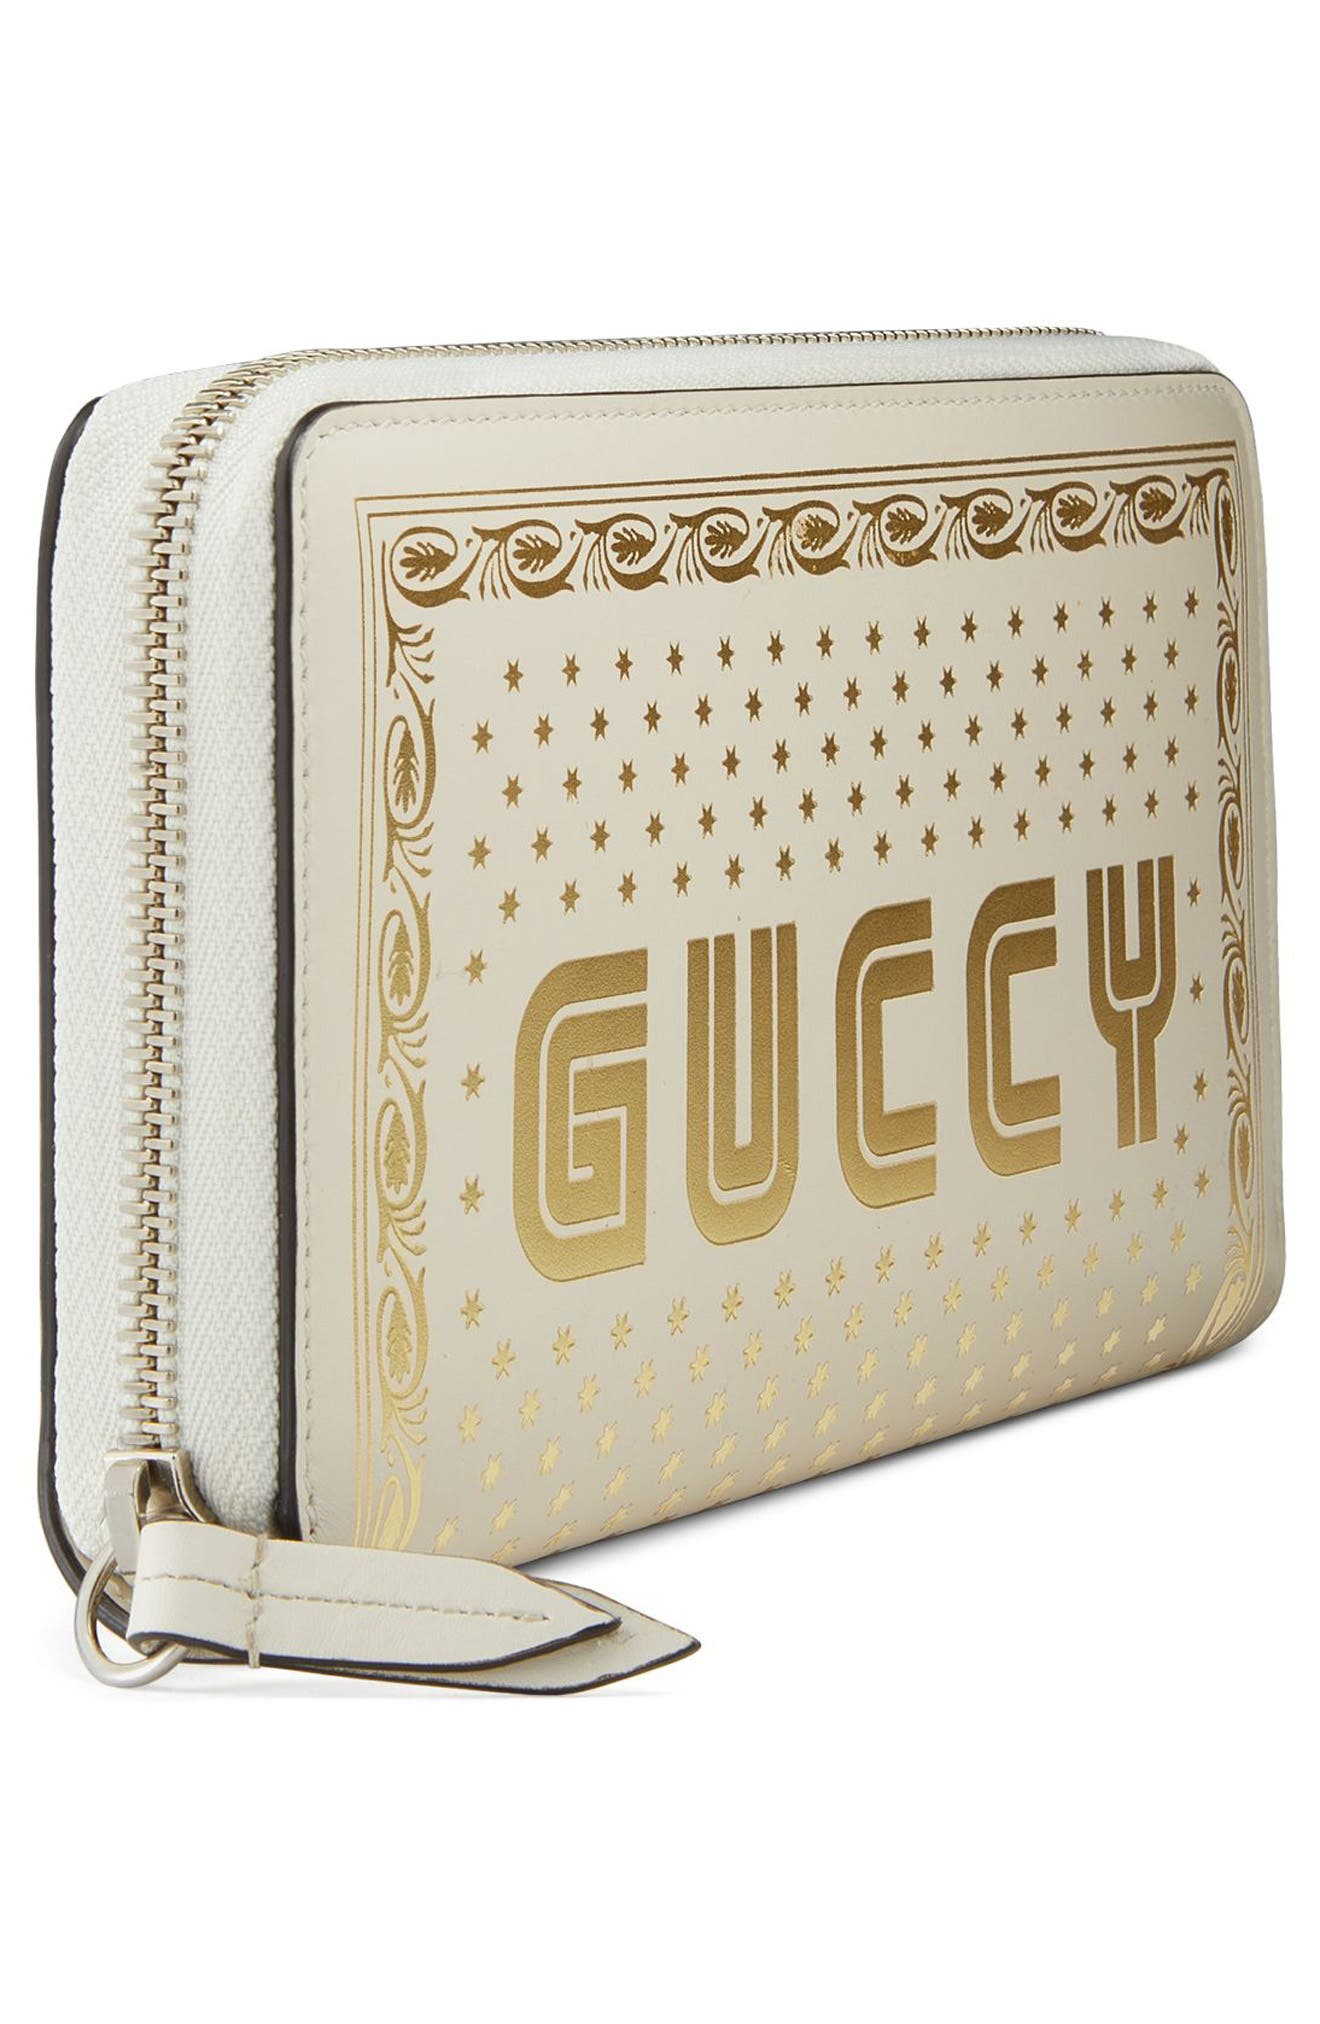 Guccy Logo Moon & Stars Leather Zip Wallet,                             Alternate thumbnail 4, color,                             MYSTIC WHITE/ ORO